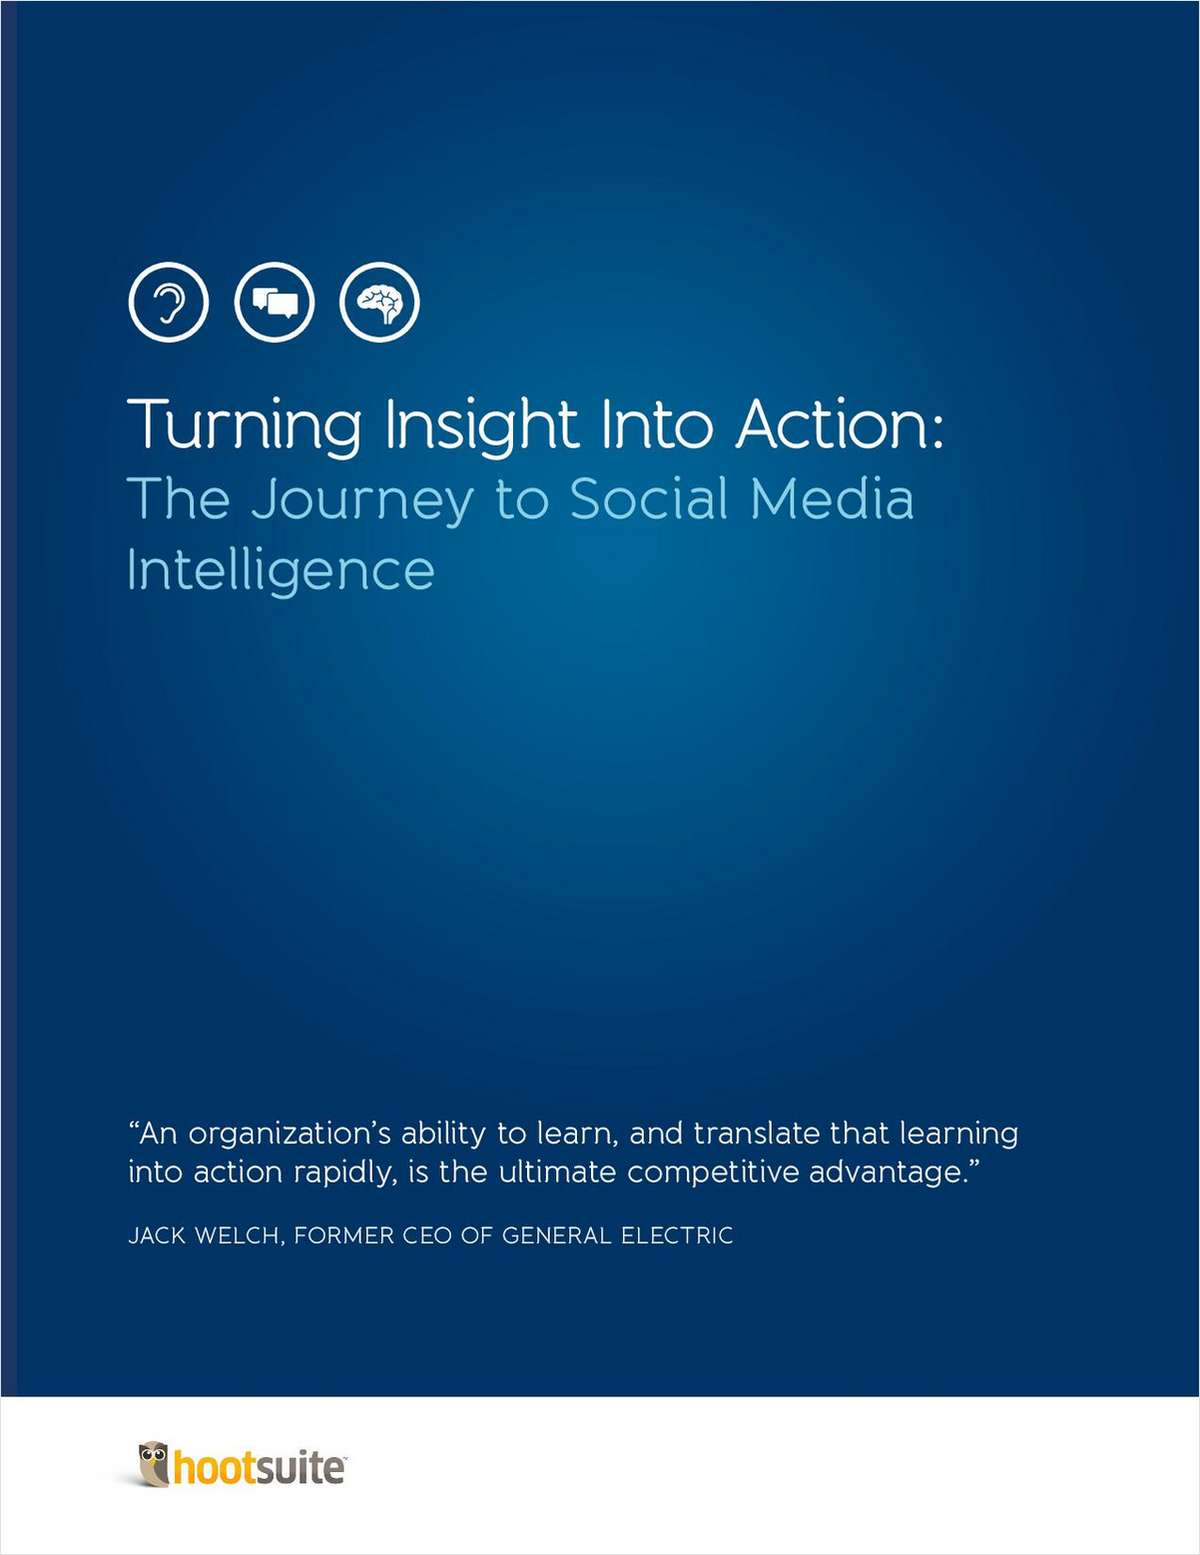 Turning Insight Into Action: The Journey to Social Media Intelligence